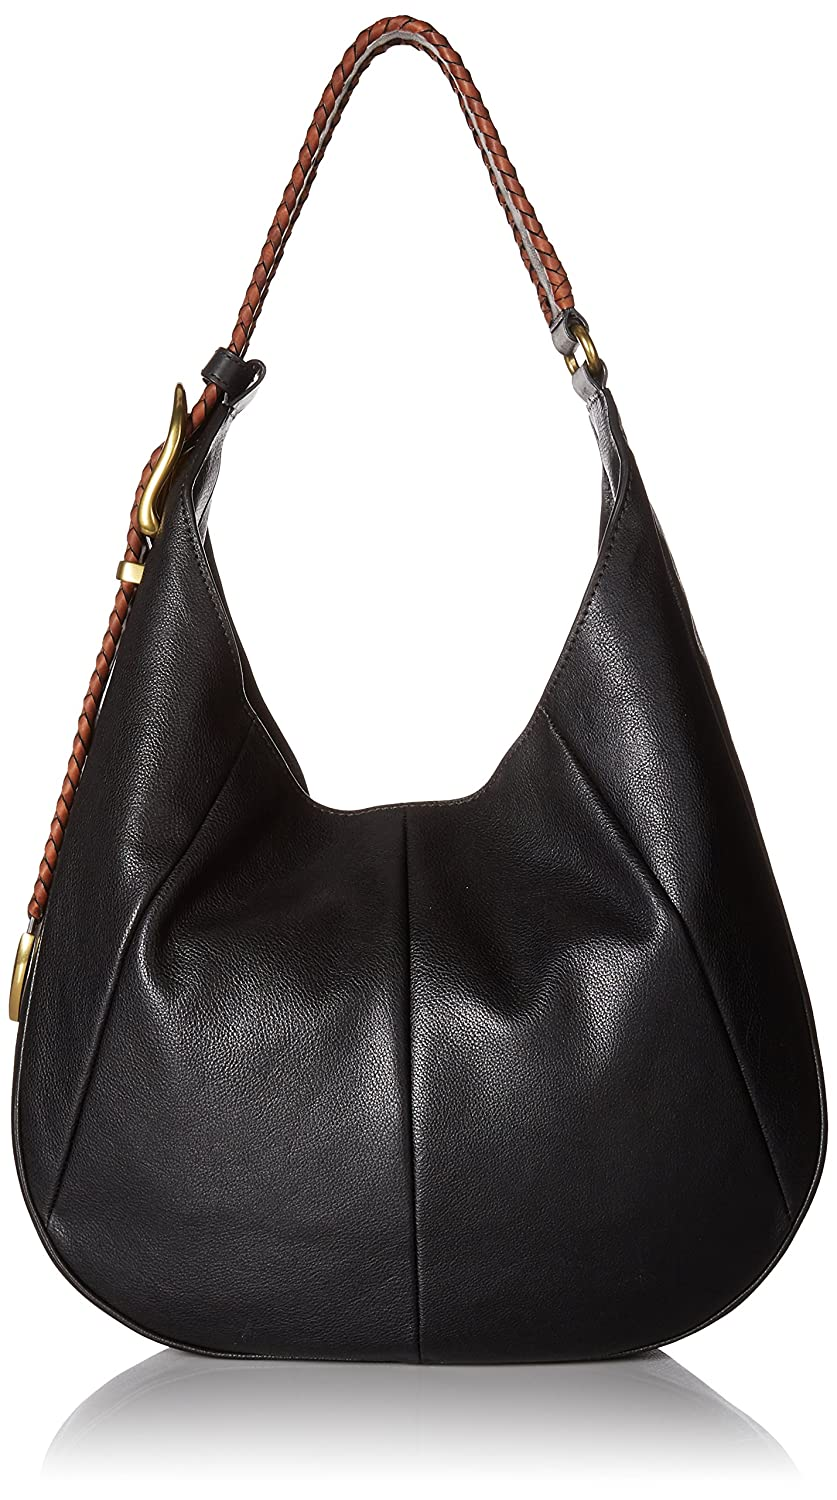 FRYE Jacqui Whipstitch Hobo Shoulder Bag Black DB079